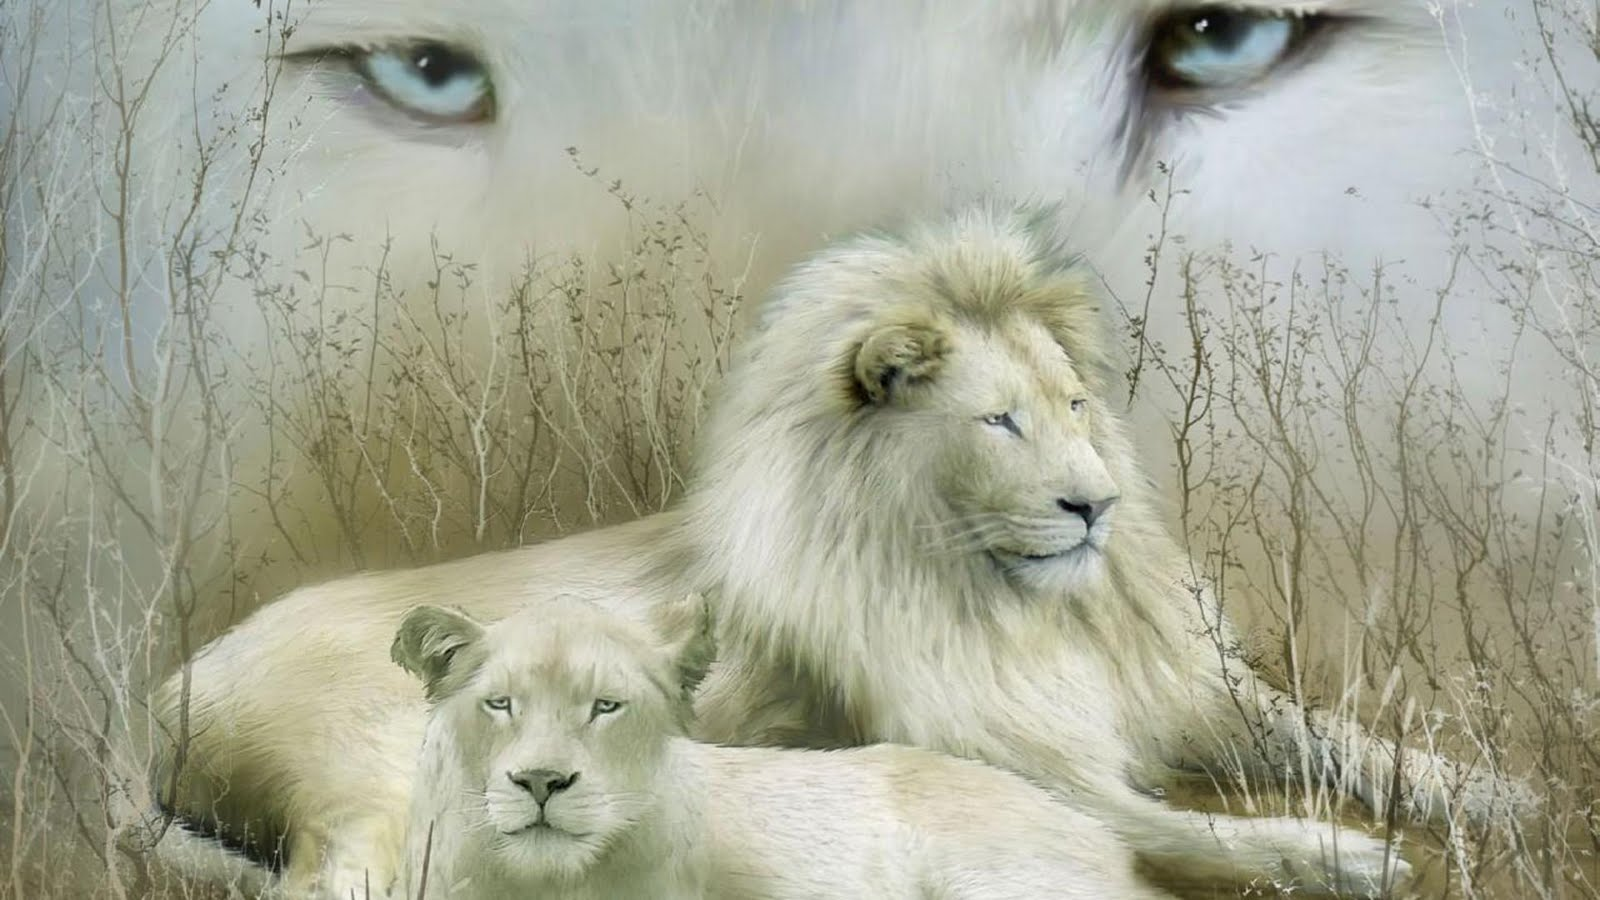 pic new posts Wallpaper Hd Le Roi Lion 1600x900